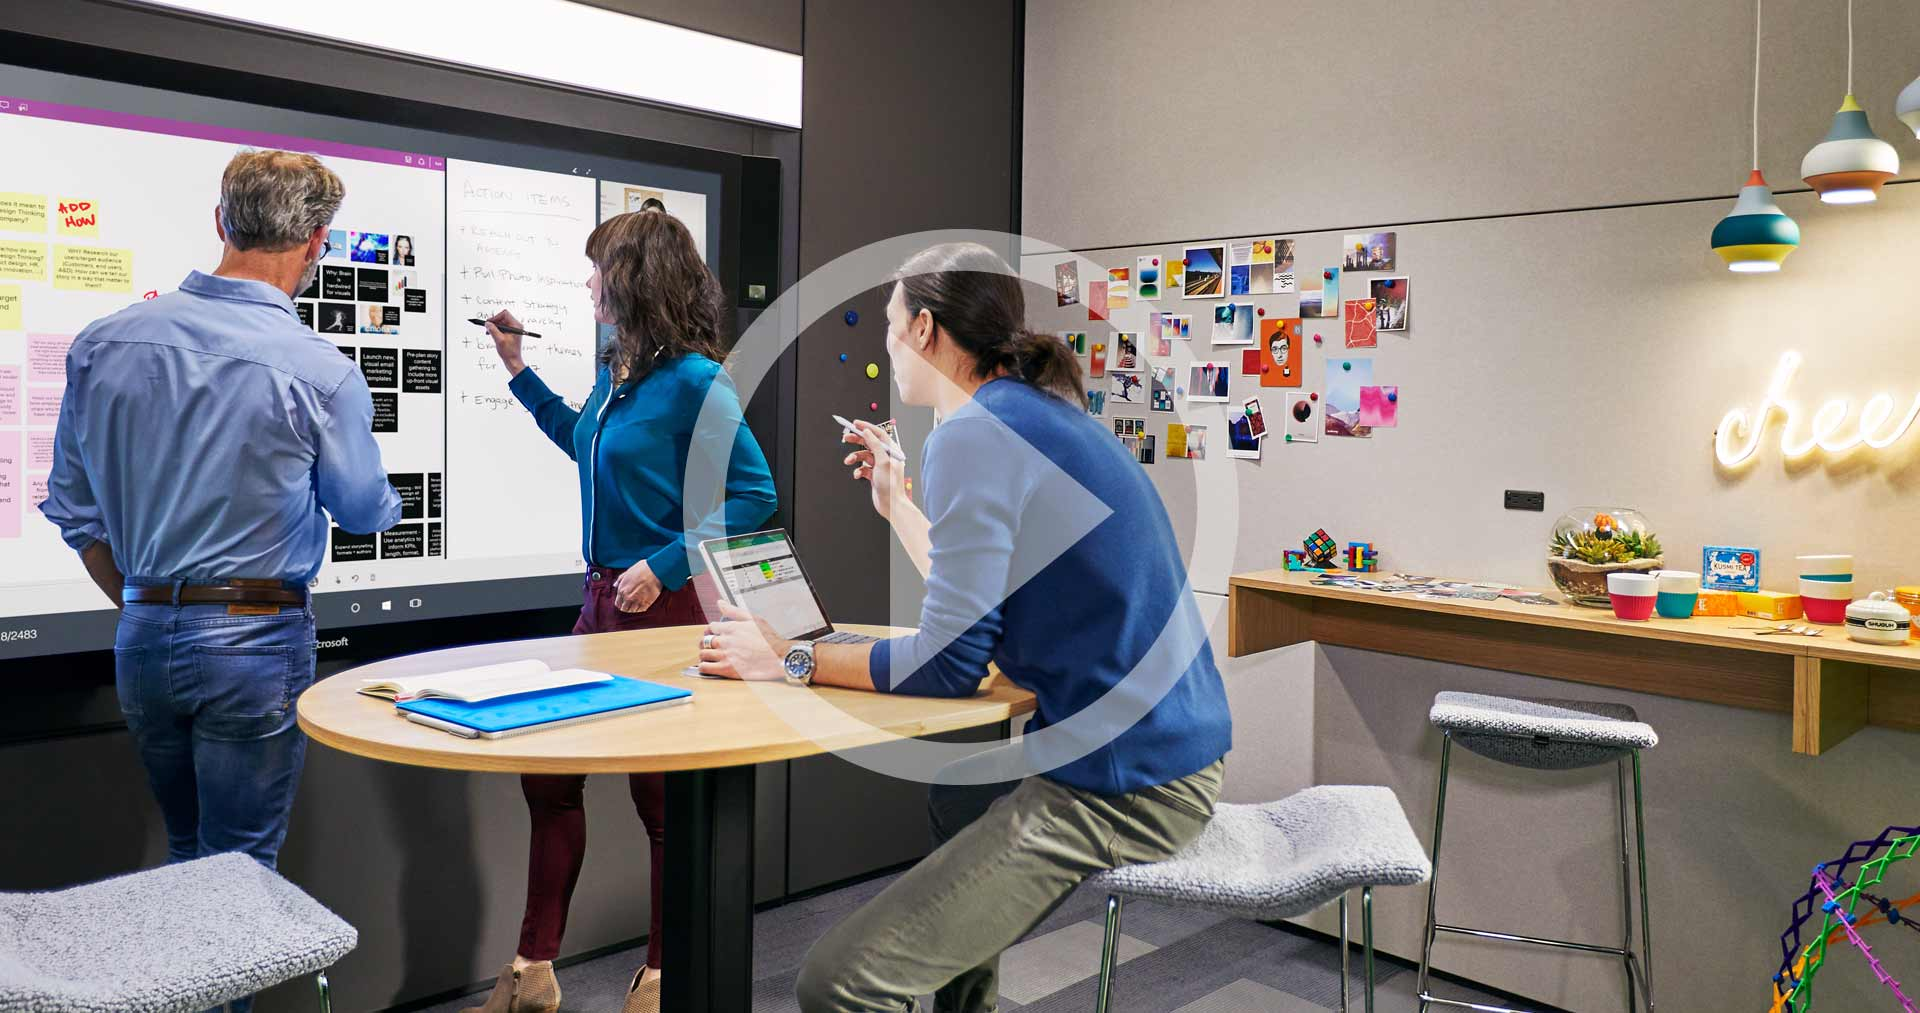 NBS is a Microsoft Surface HUB Authorized Reseller